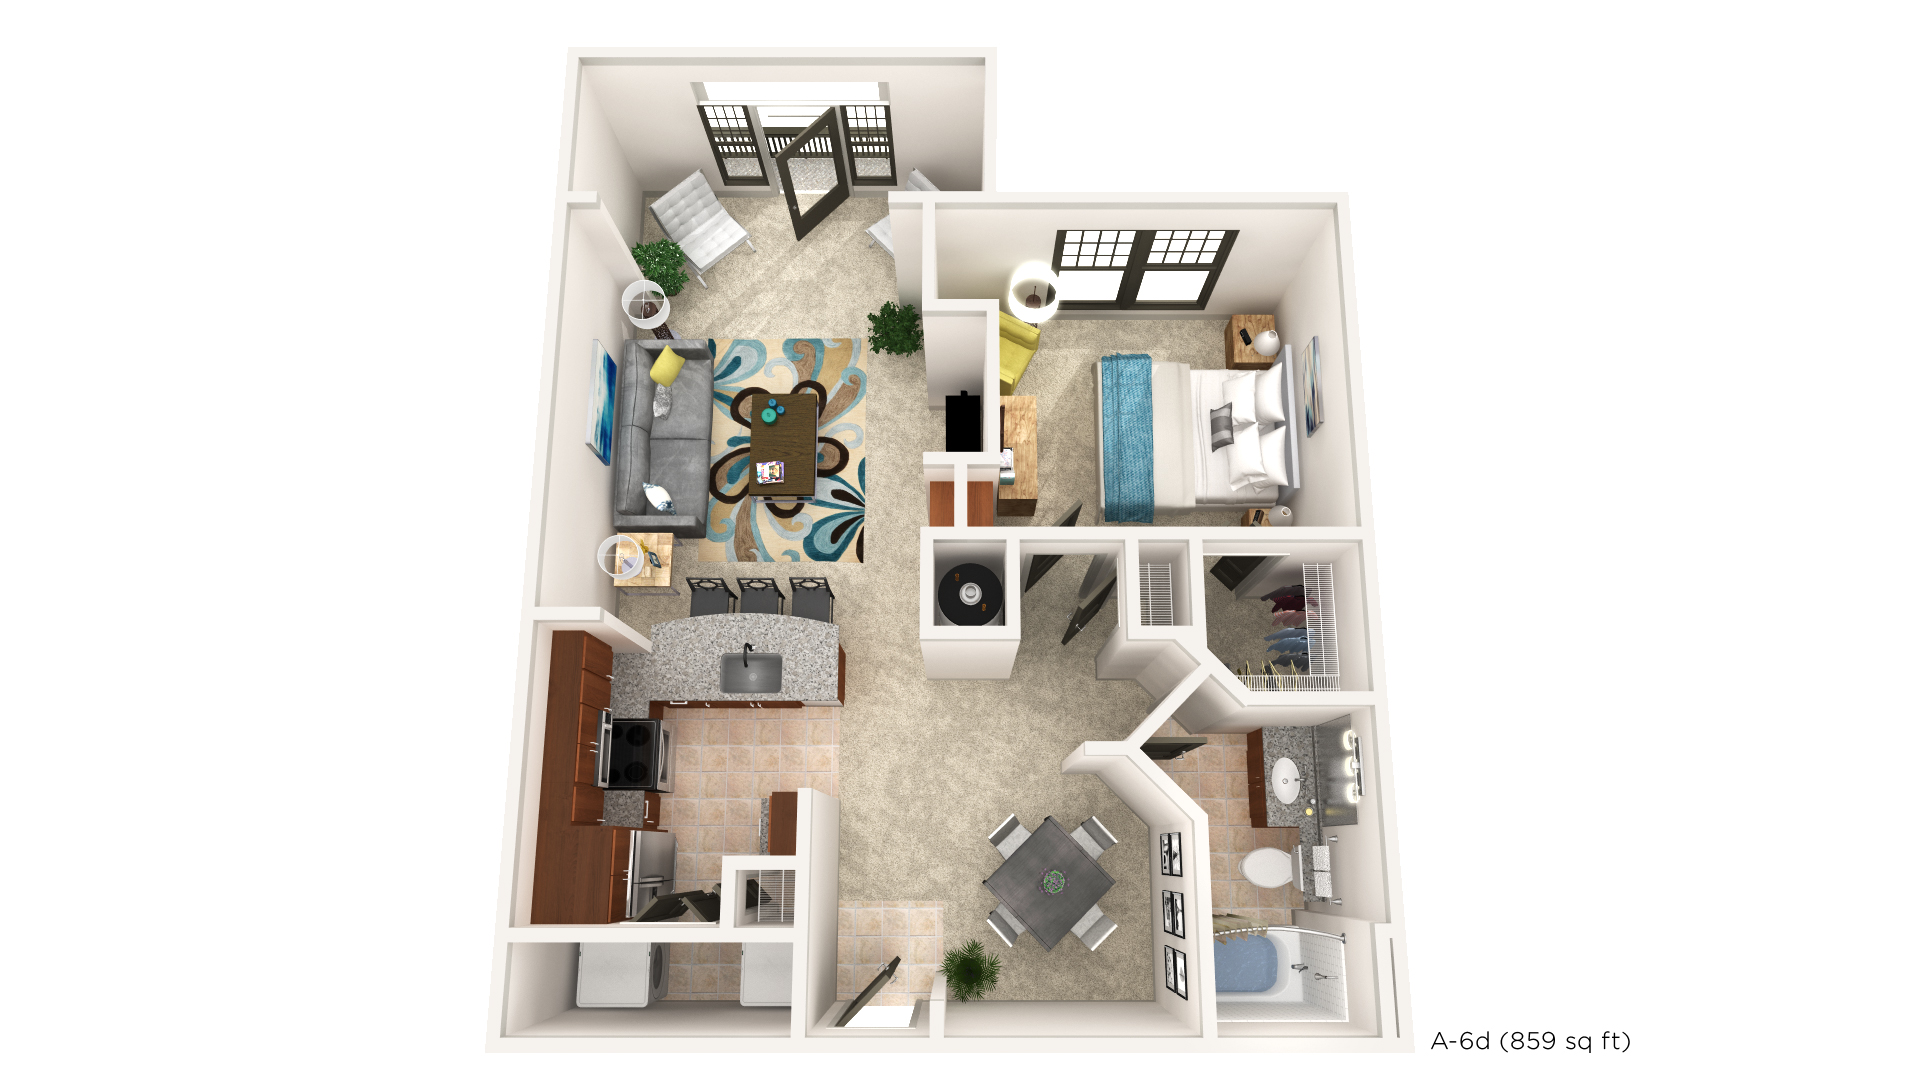 Brookleigh Flats Luxury Apartment Homes - Floorplan - A-6D